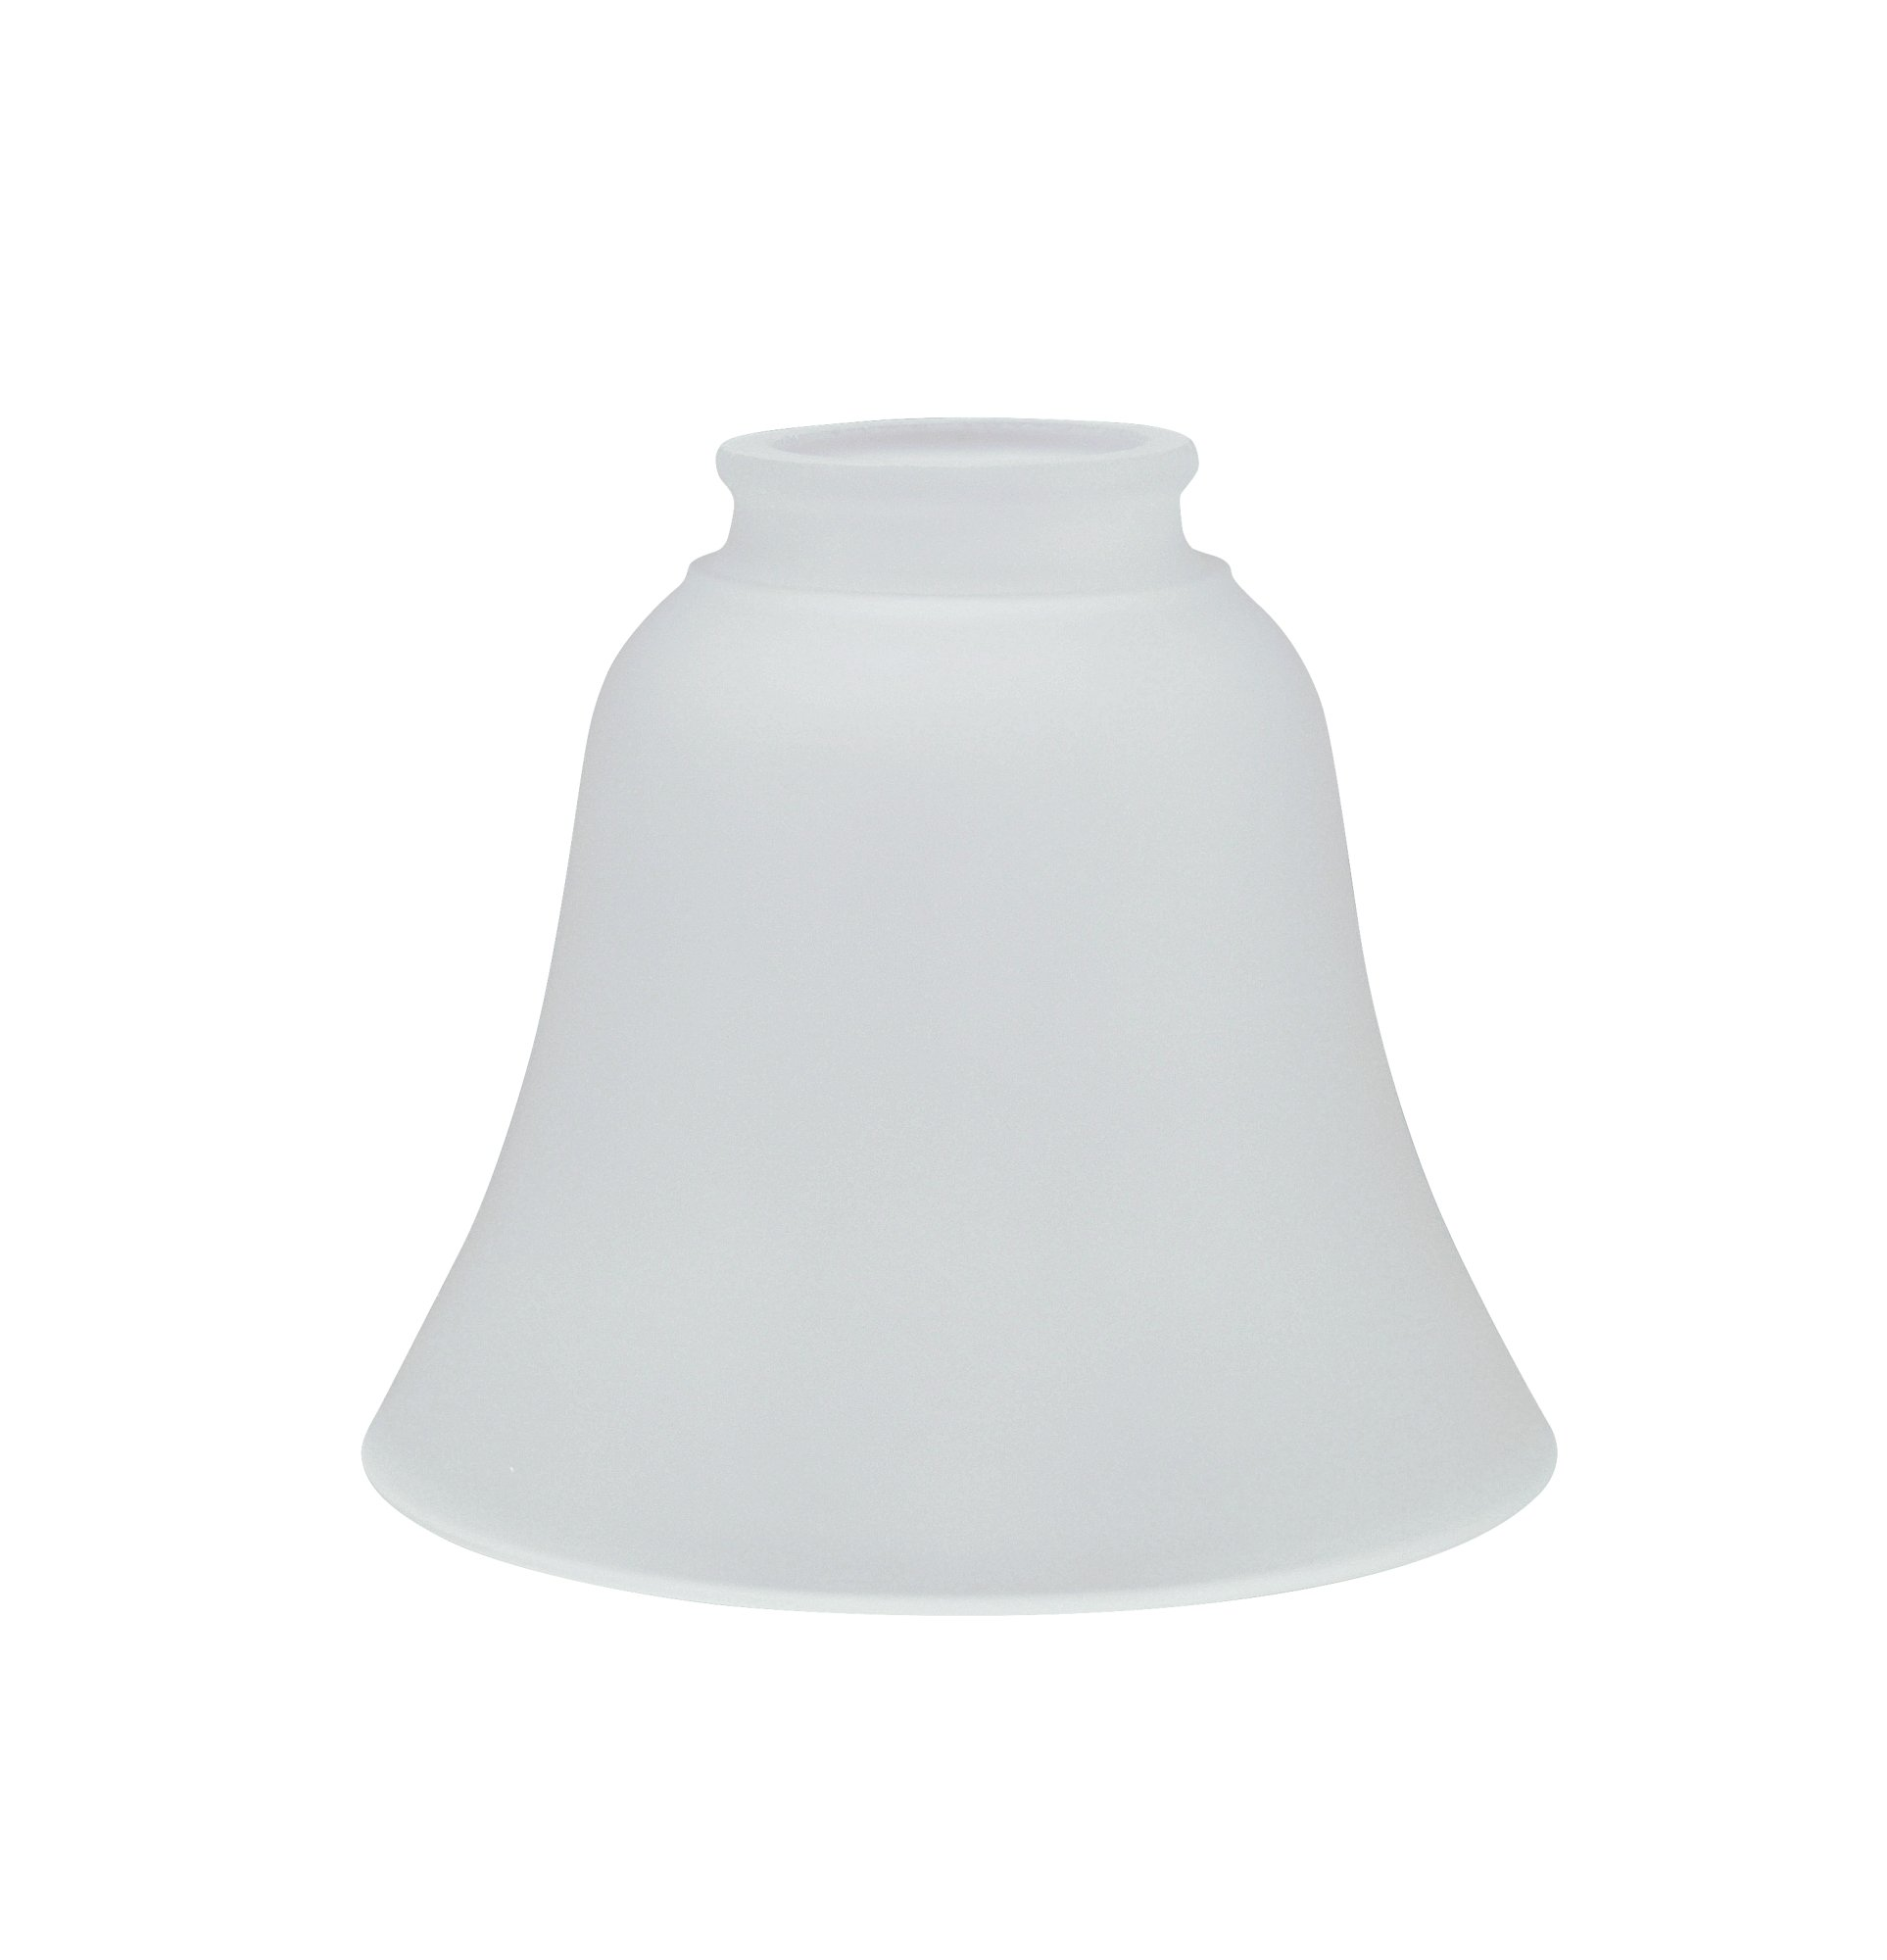 Aspen Creative 23026-4 Transitional Style Replacement Glass Shade, Frosted by Aspen Creative (Image #2)